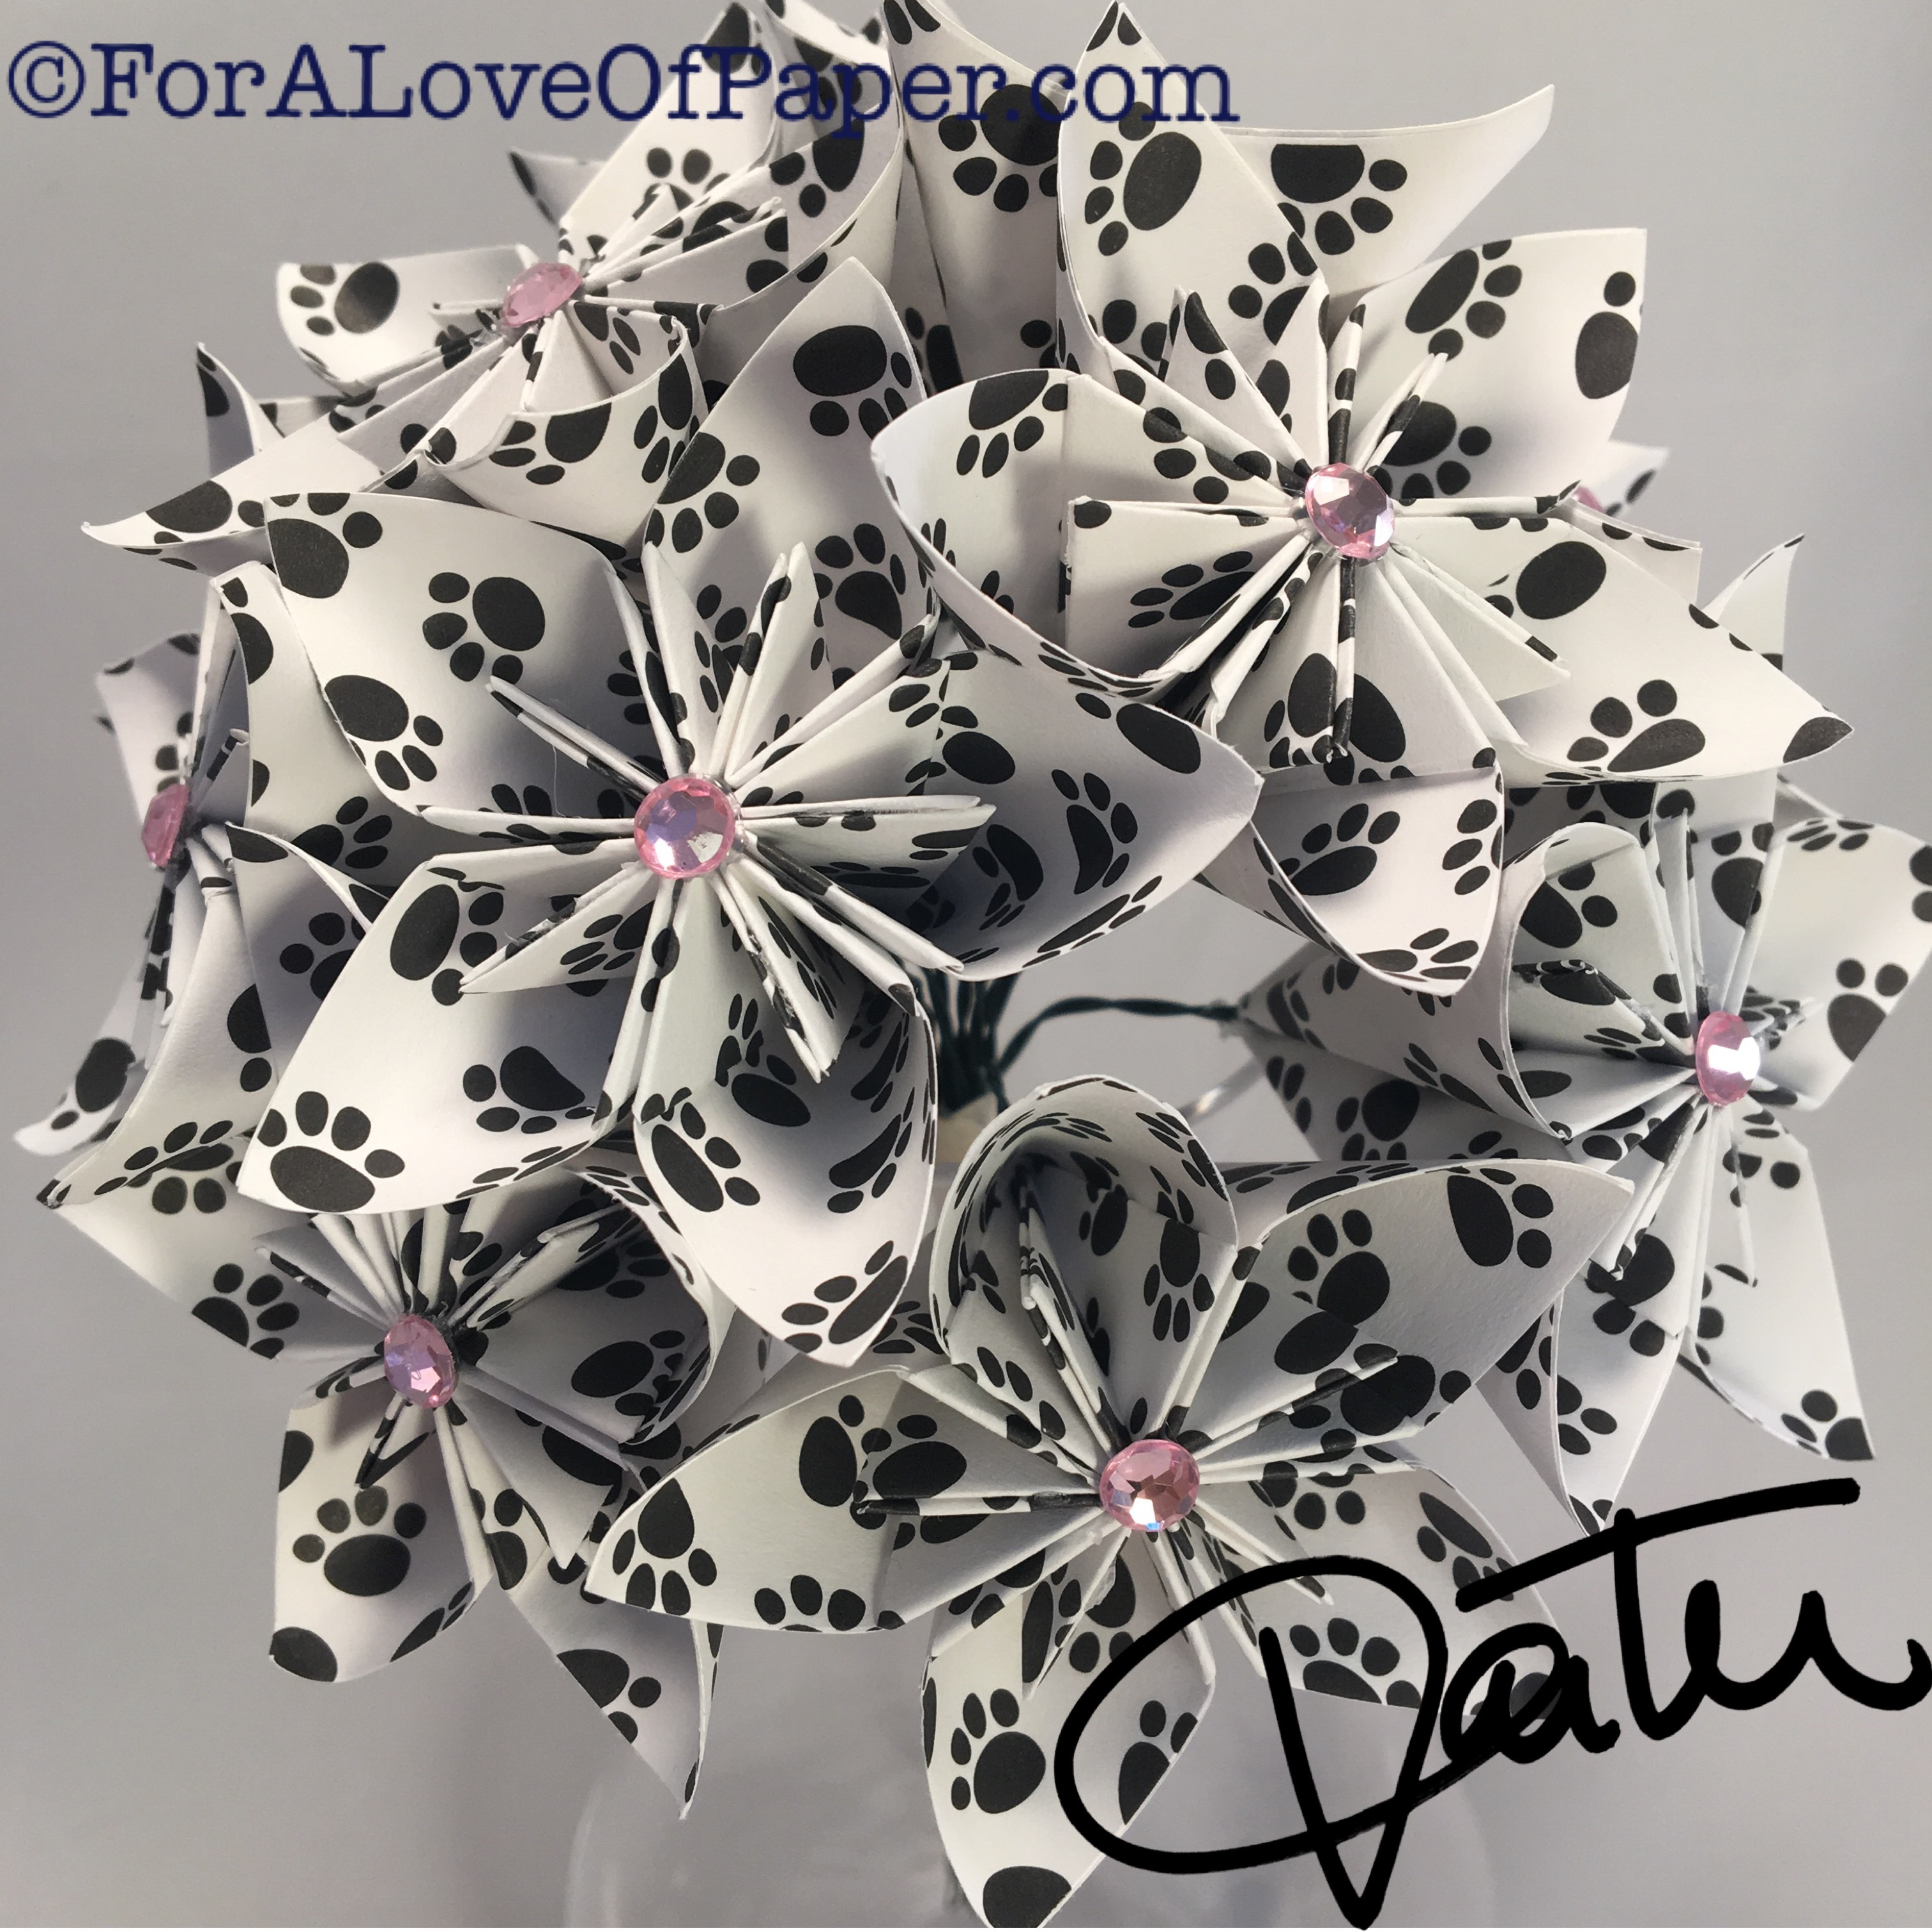 Puppy paw print paper flowers